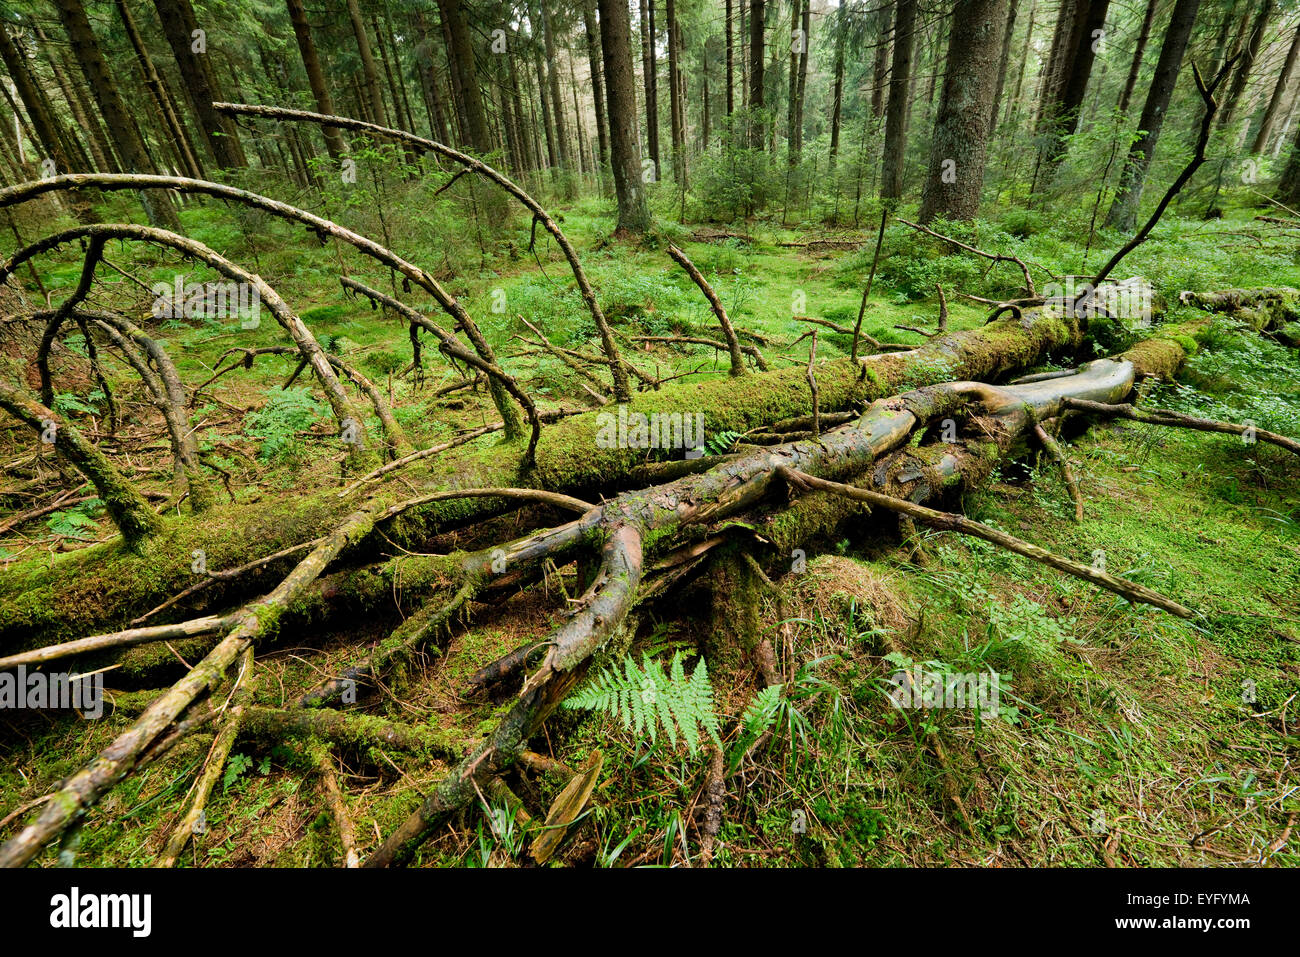 Deadwood in primeval spruce forest, Norway Spruce (Picea abies), Harz National Park, Lower Saxony, Germany - Stock Image